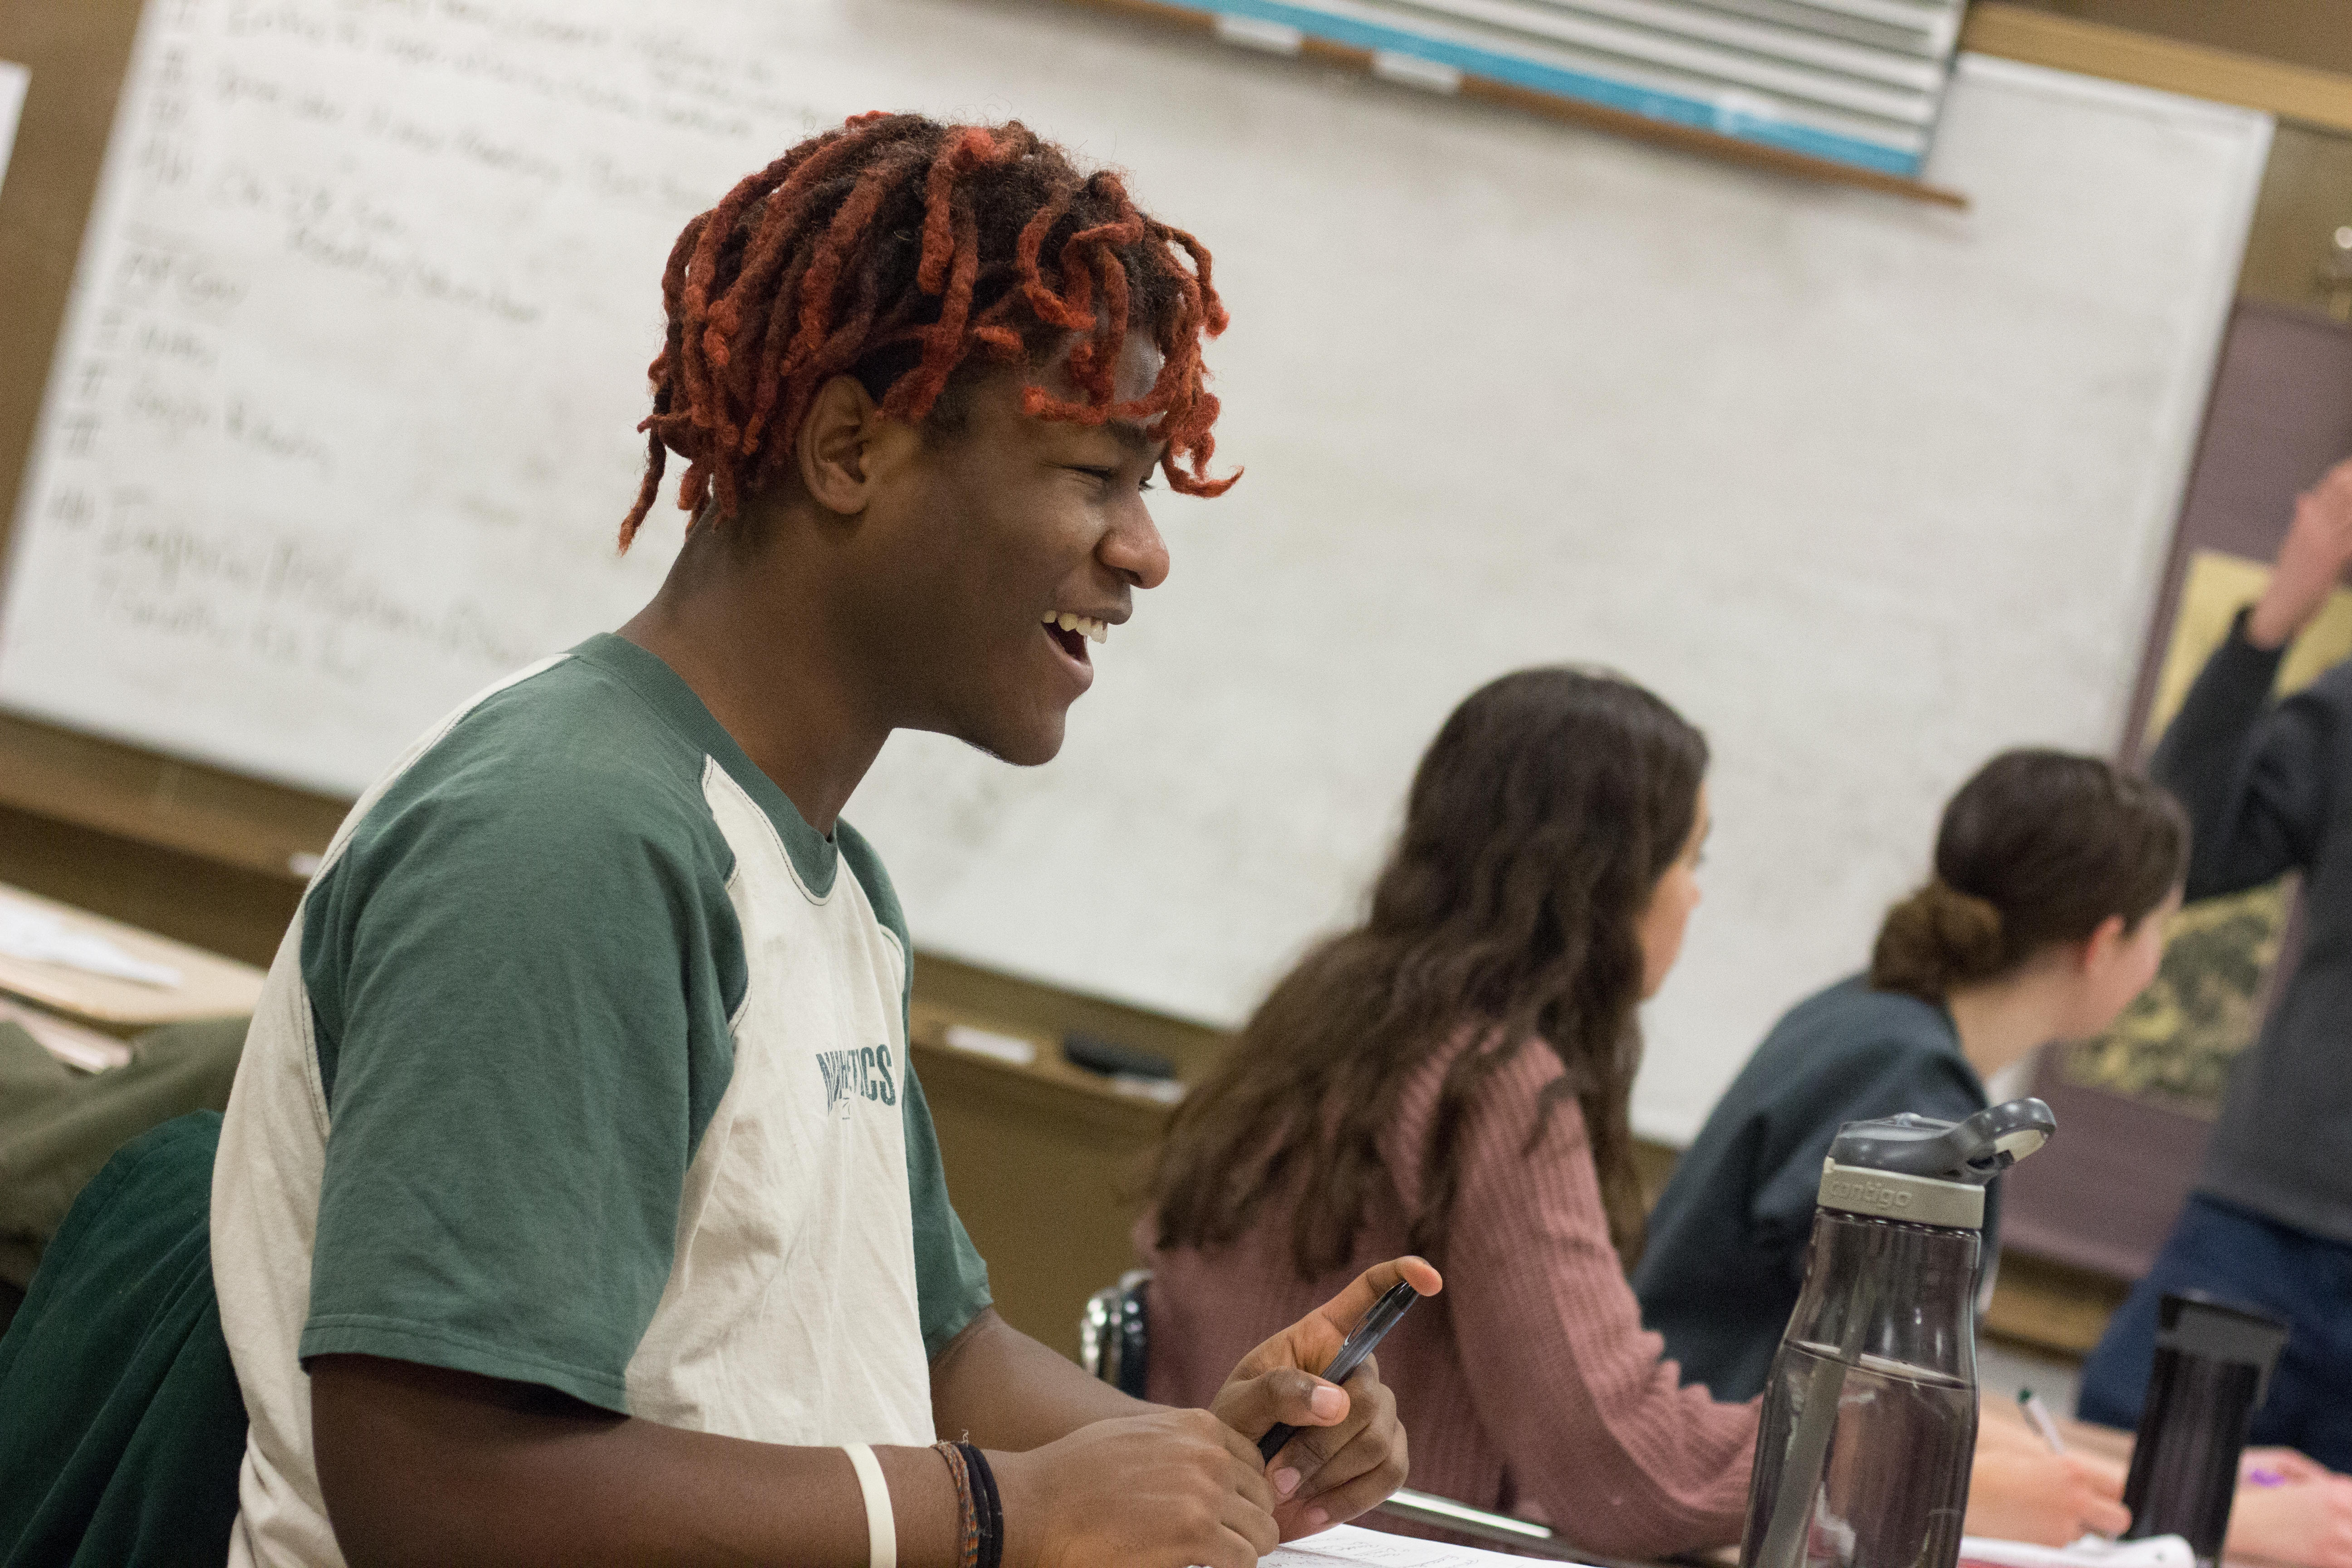 Student smiling while working in an Advanced Placement class.